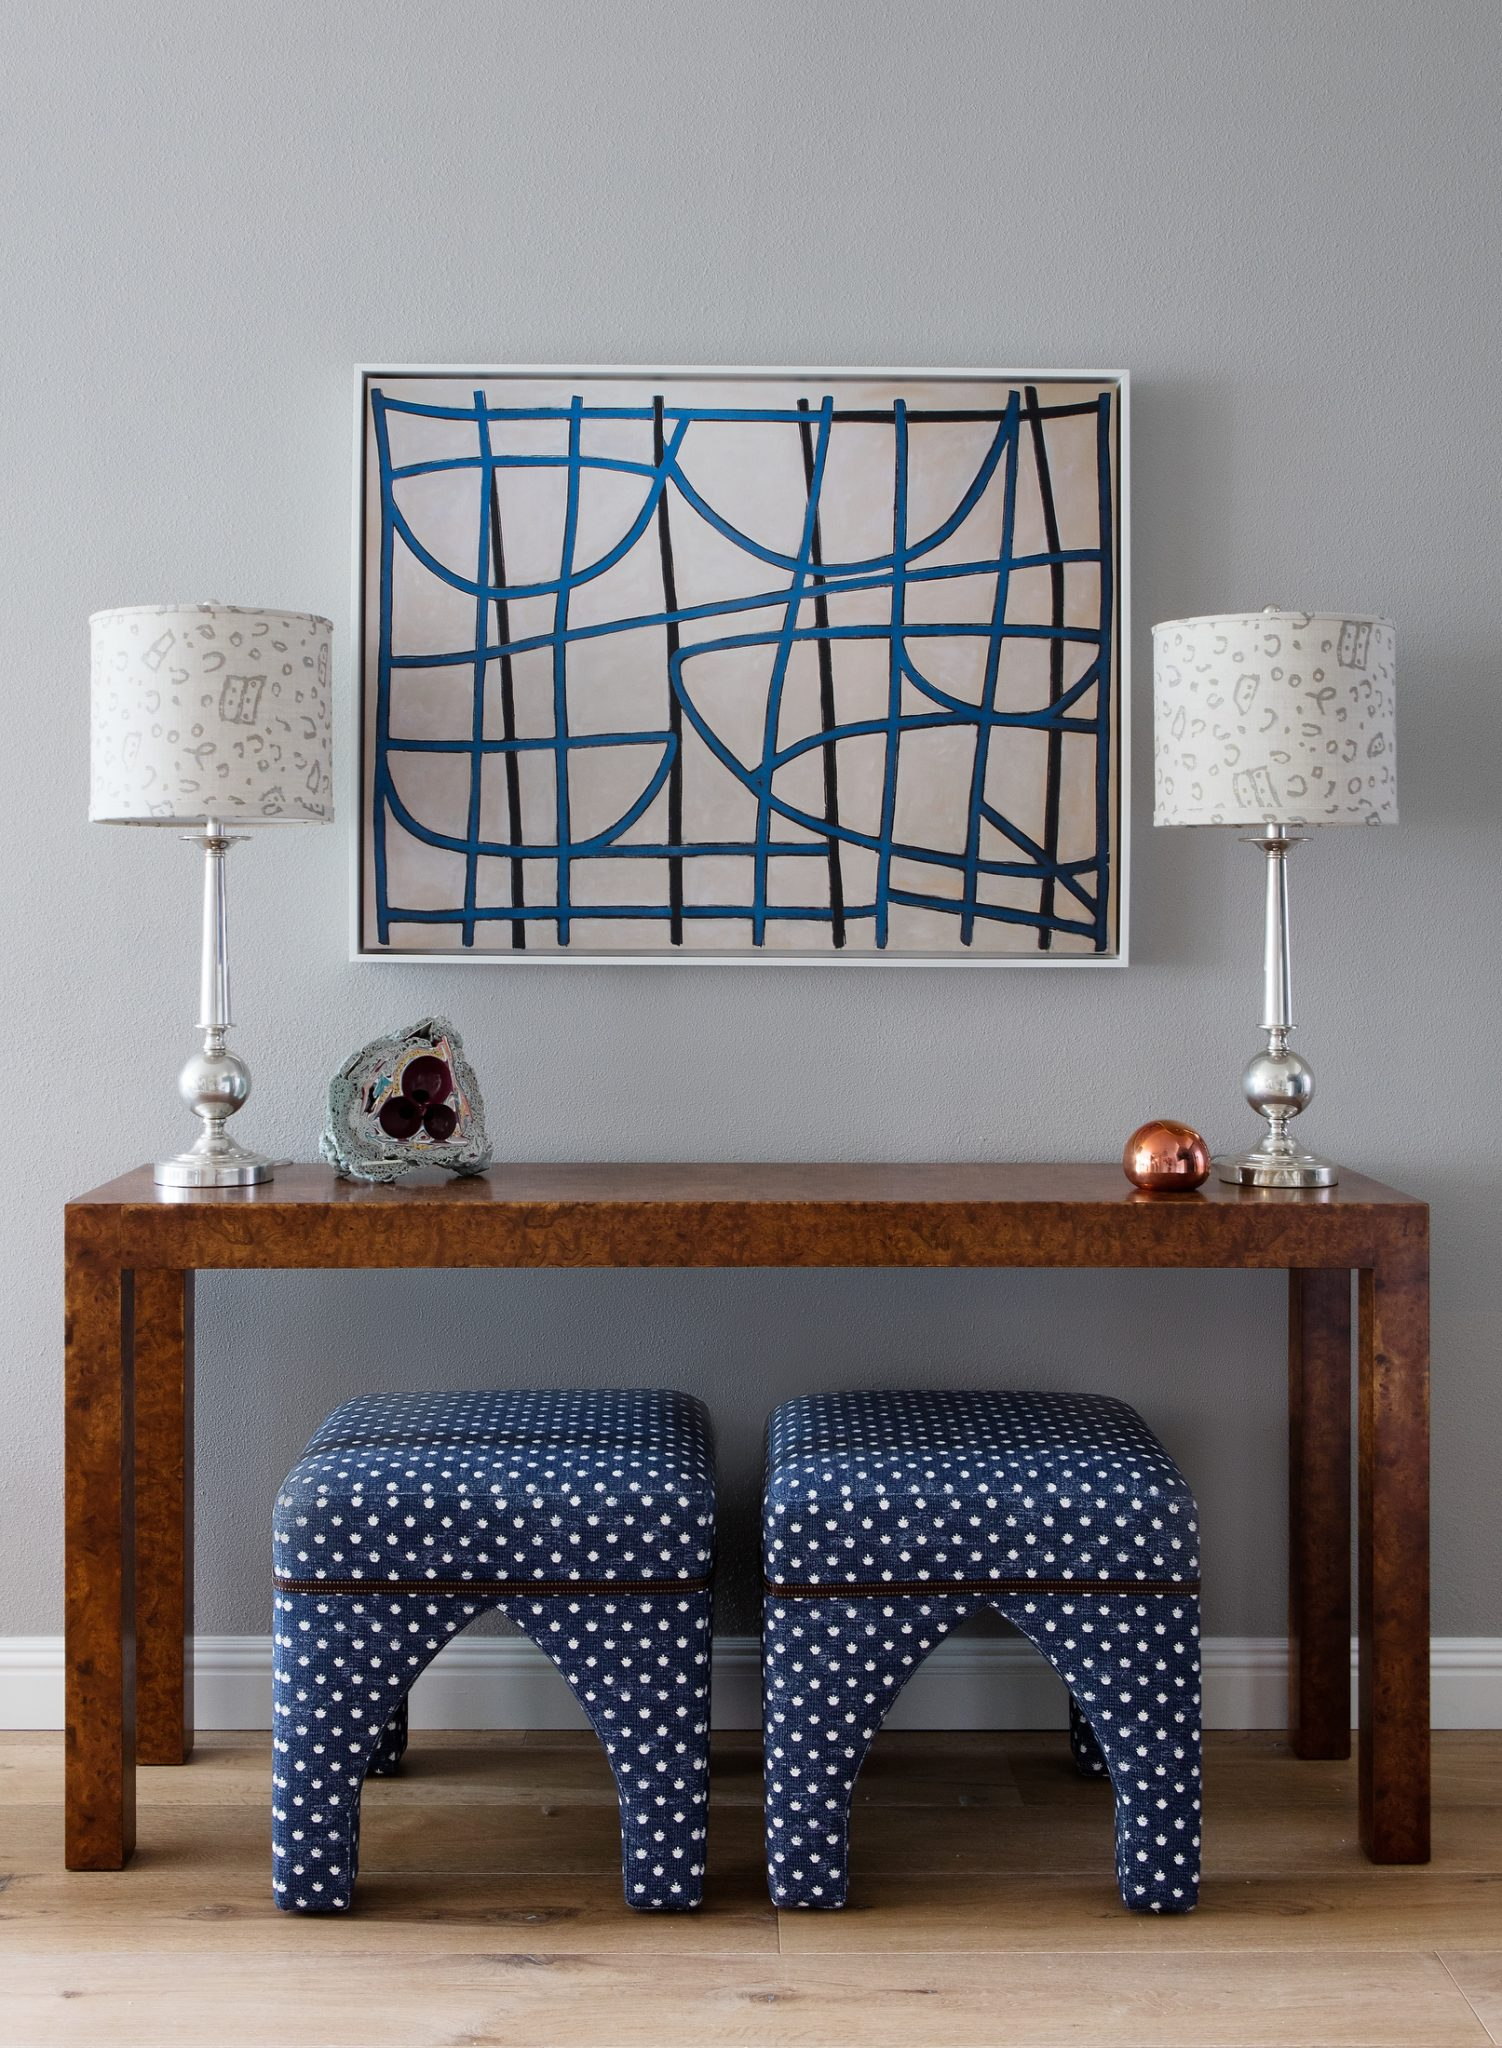 Pattern at Play in this Eclectic Entry by Stefani Stein Inc.